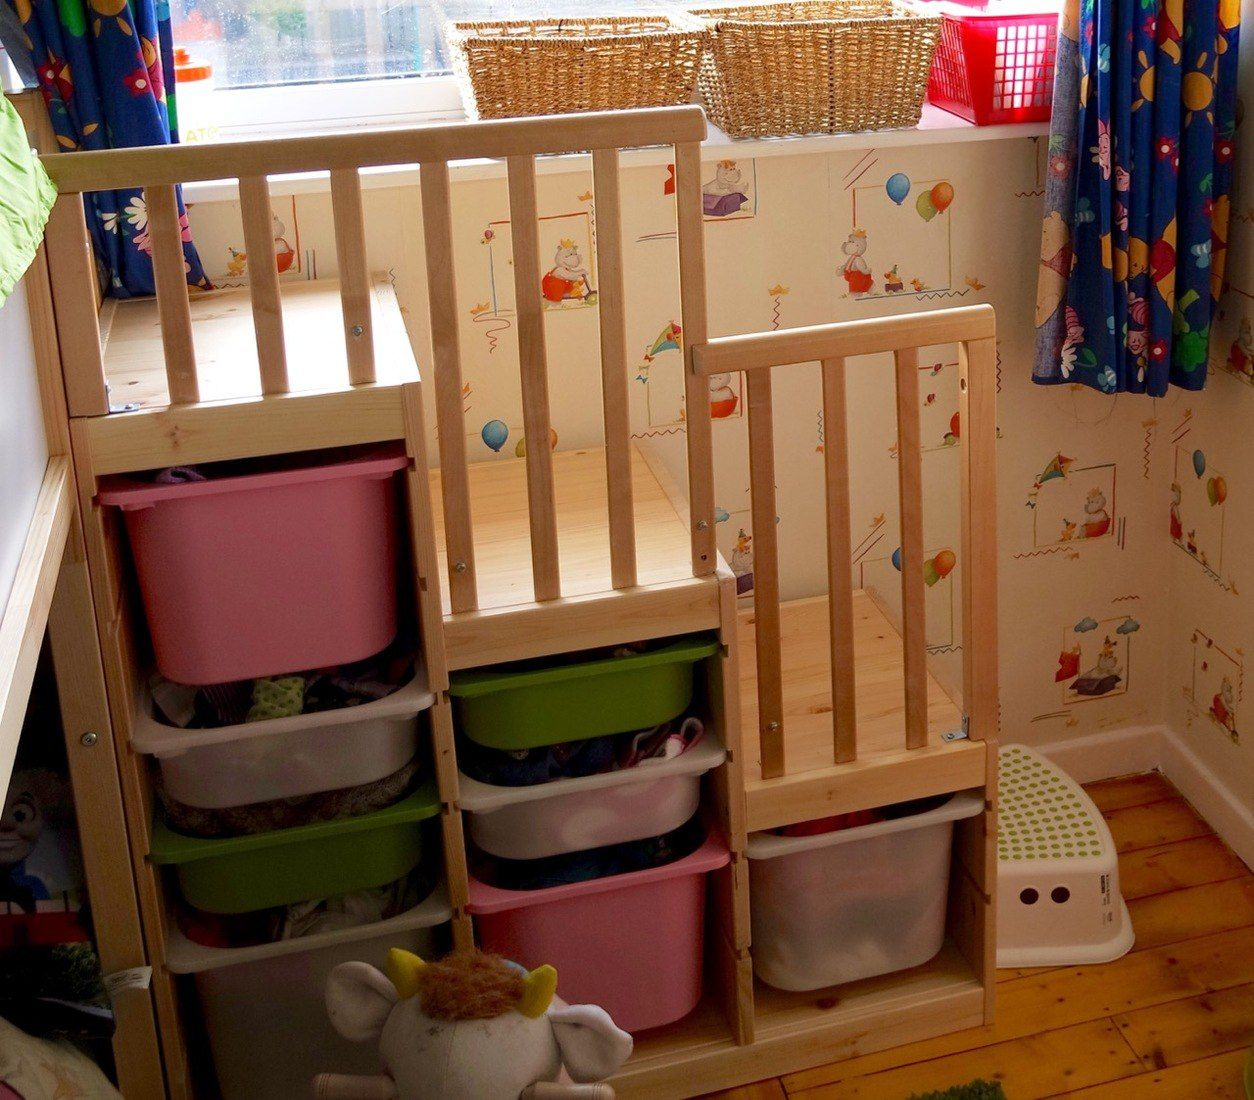 Ikea kinderzimmer trofast for Kinderzimmer hacks